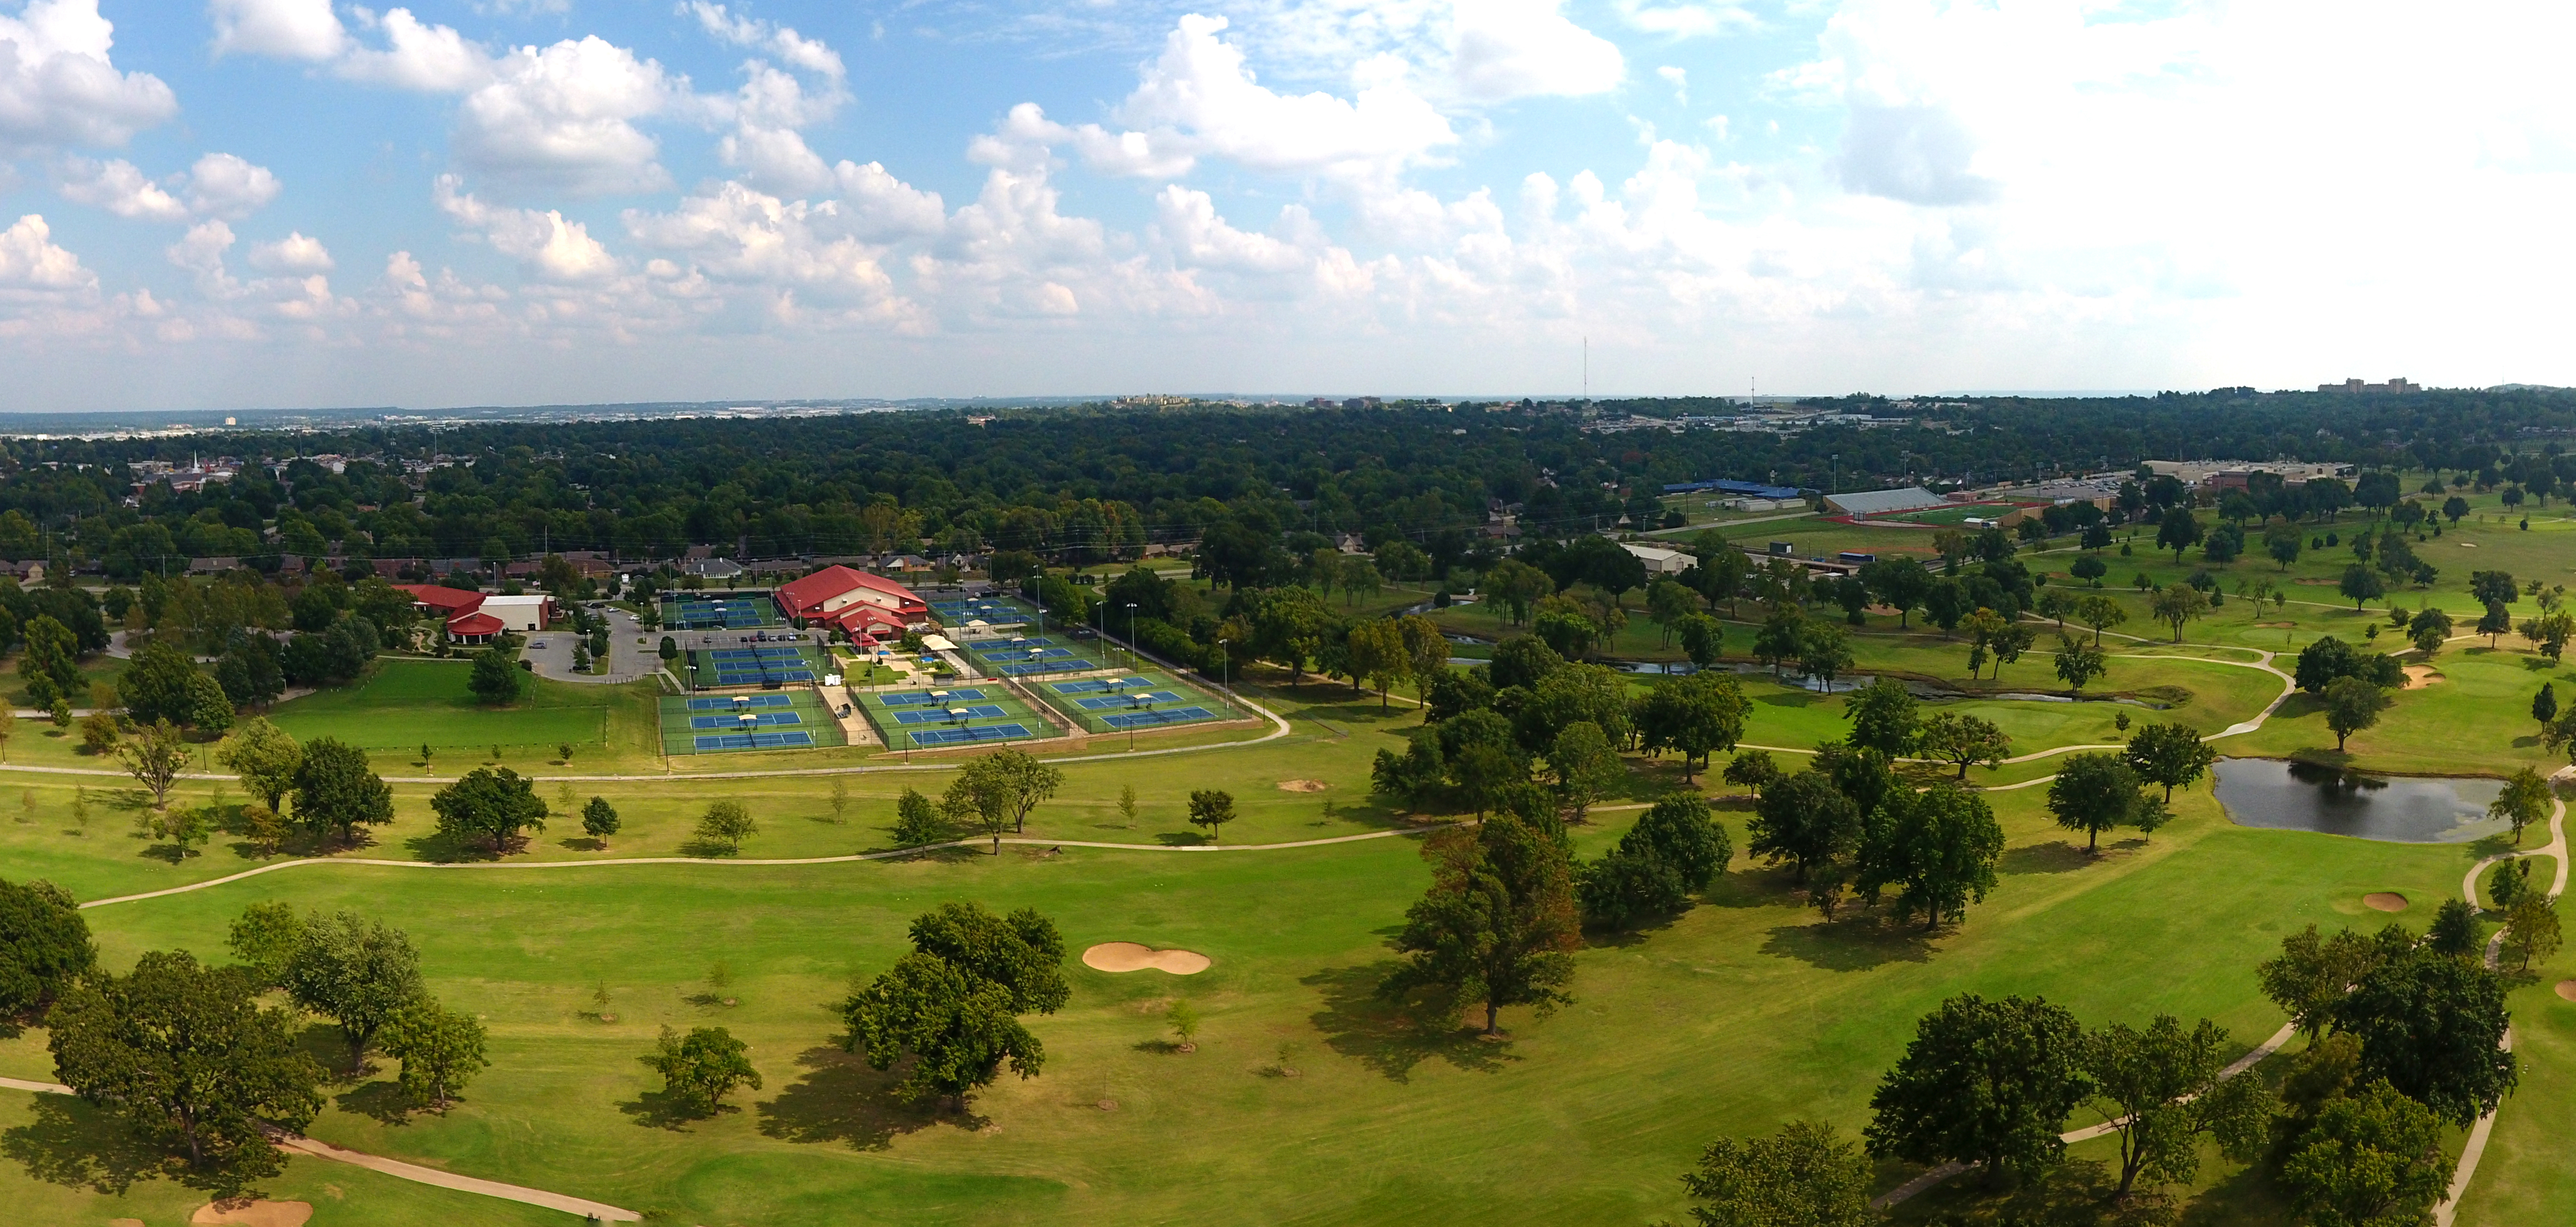 An aerial view of LaFortune Park with the golf course, tennis courts, and trees in view.